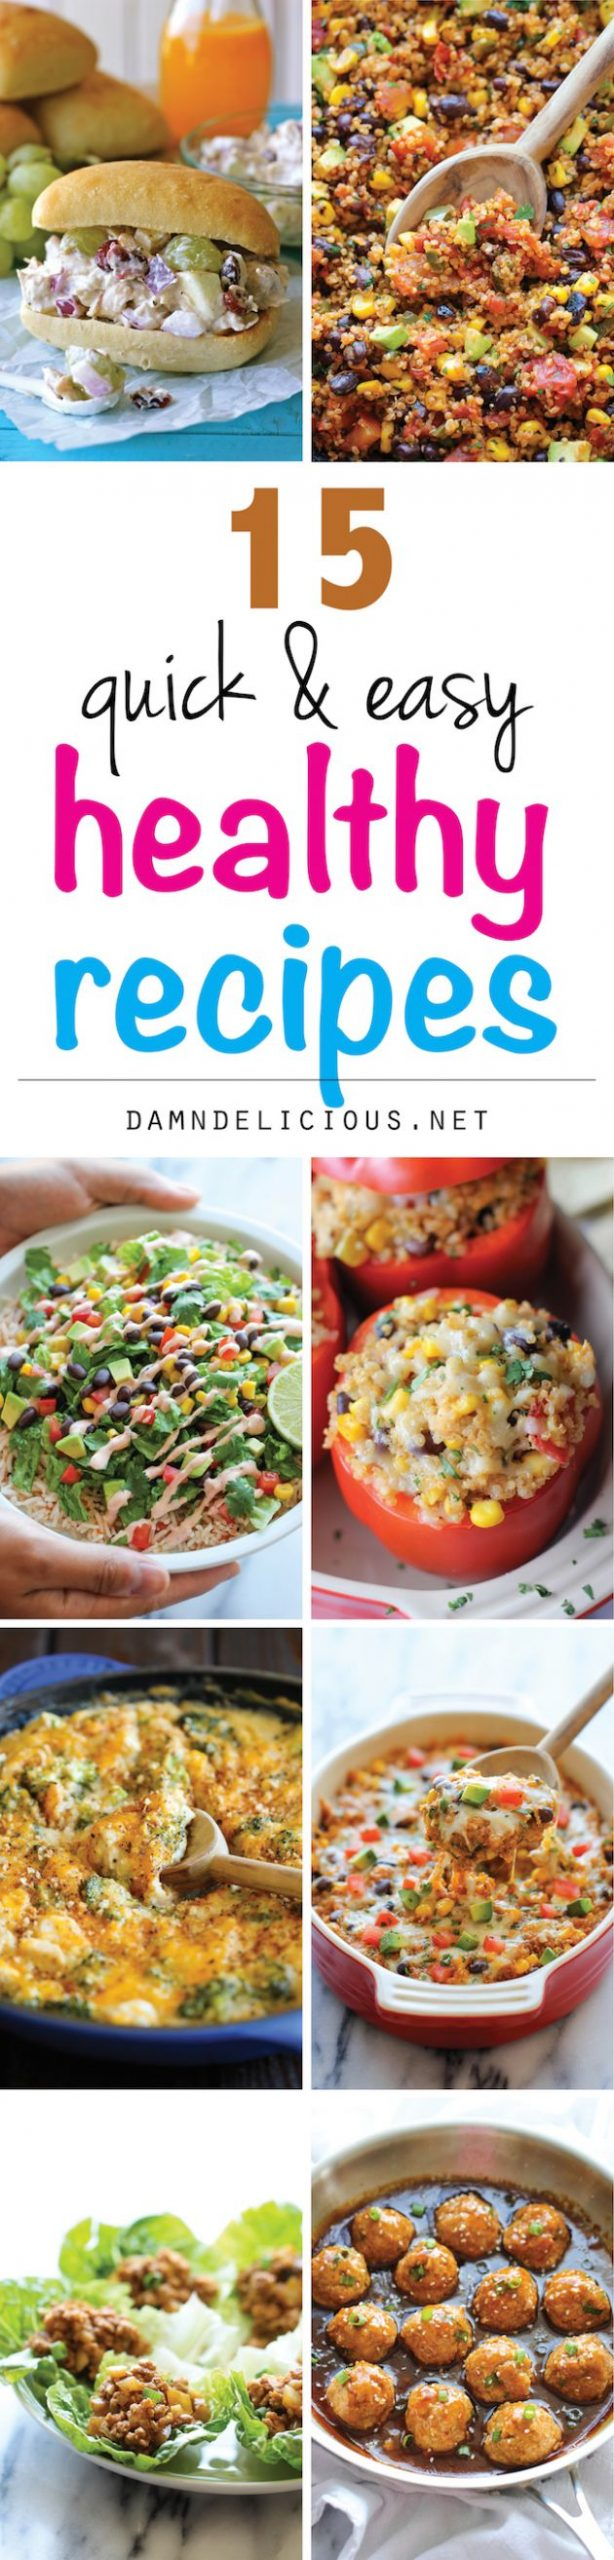 9 Quick and Easy Healthy Recipes - Damn Delicious - Healthy Recipes To Make